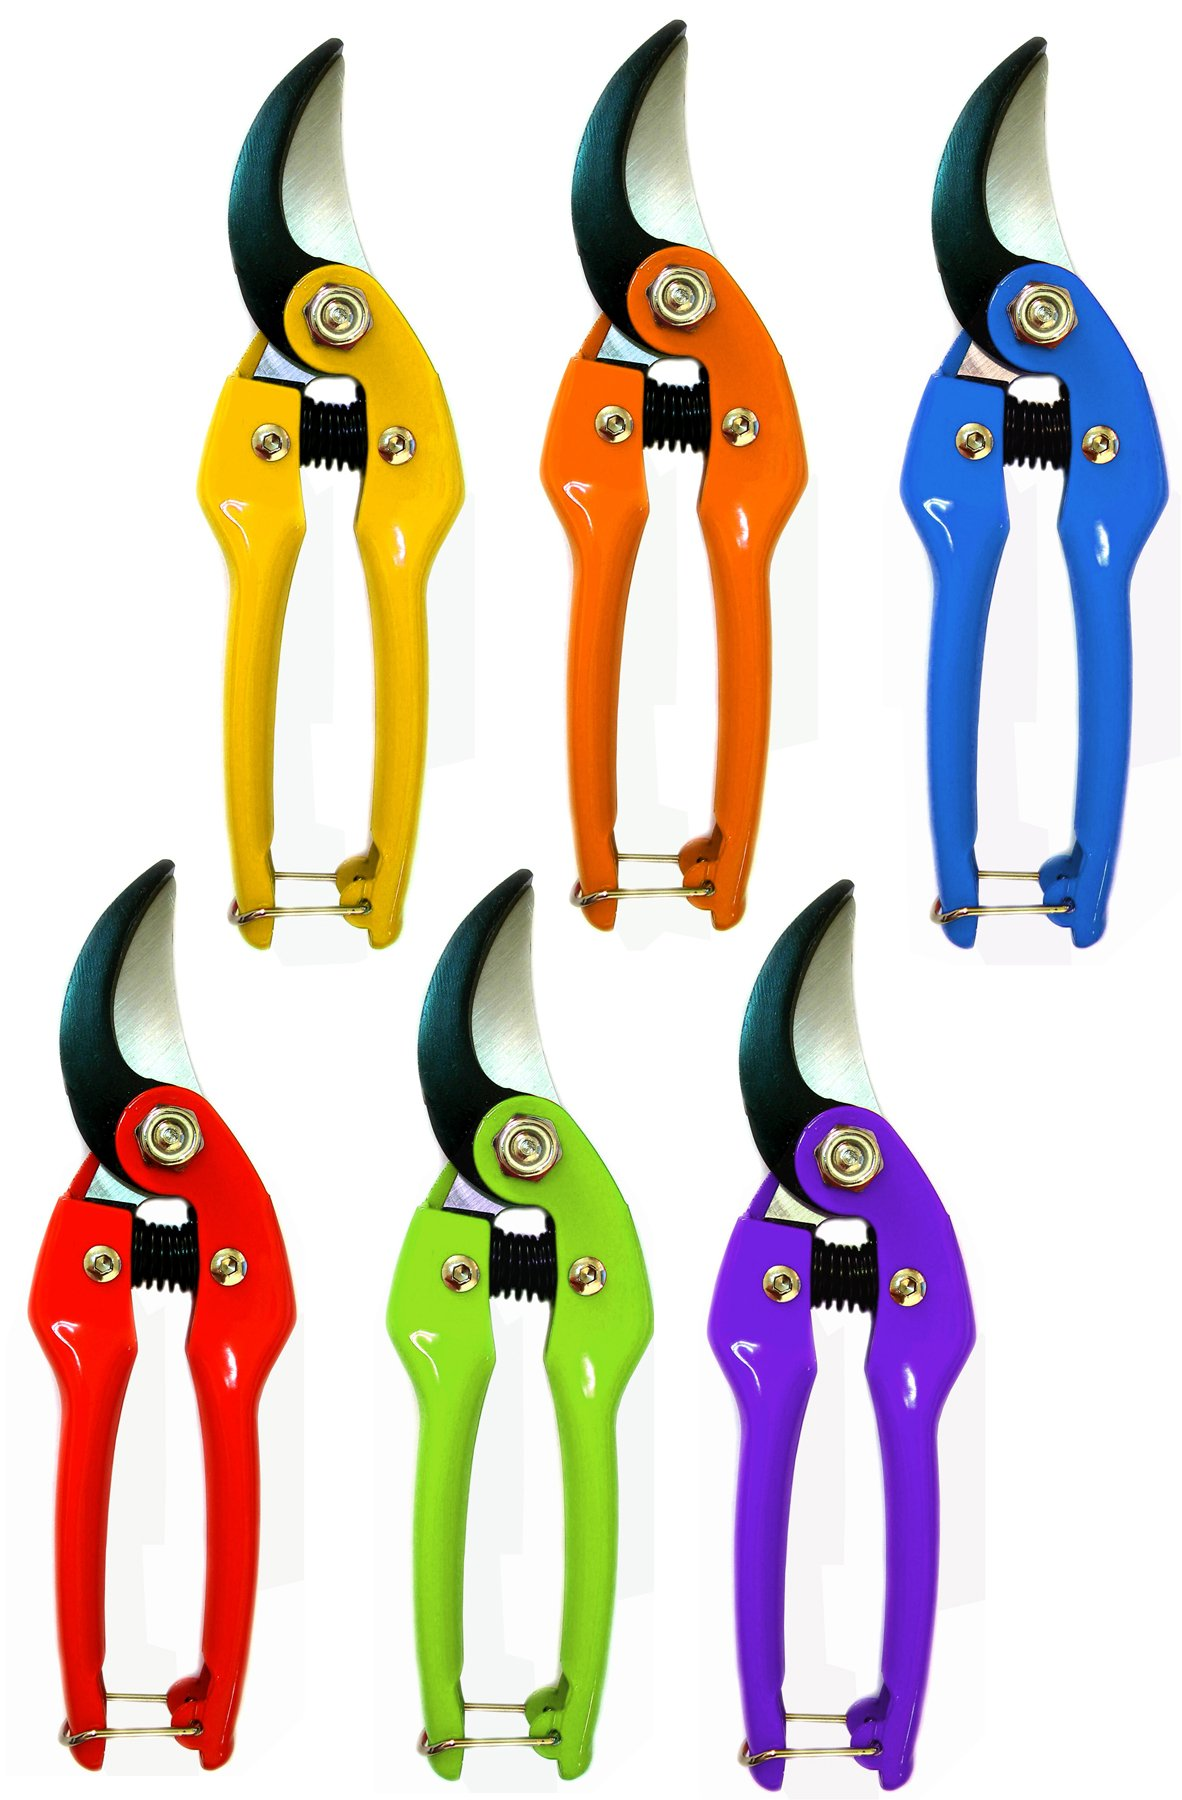 Barnel USA B175 7.5'' Assorted Colors Bypass Pruner by Barnel International